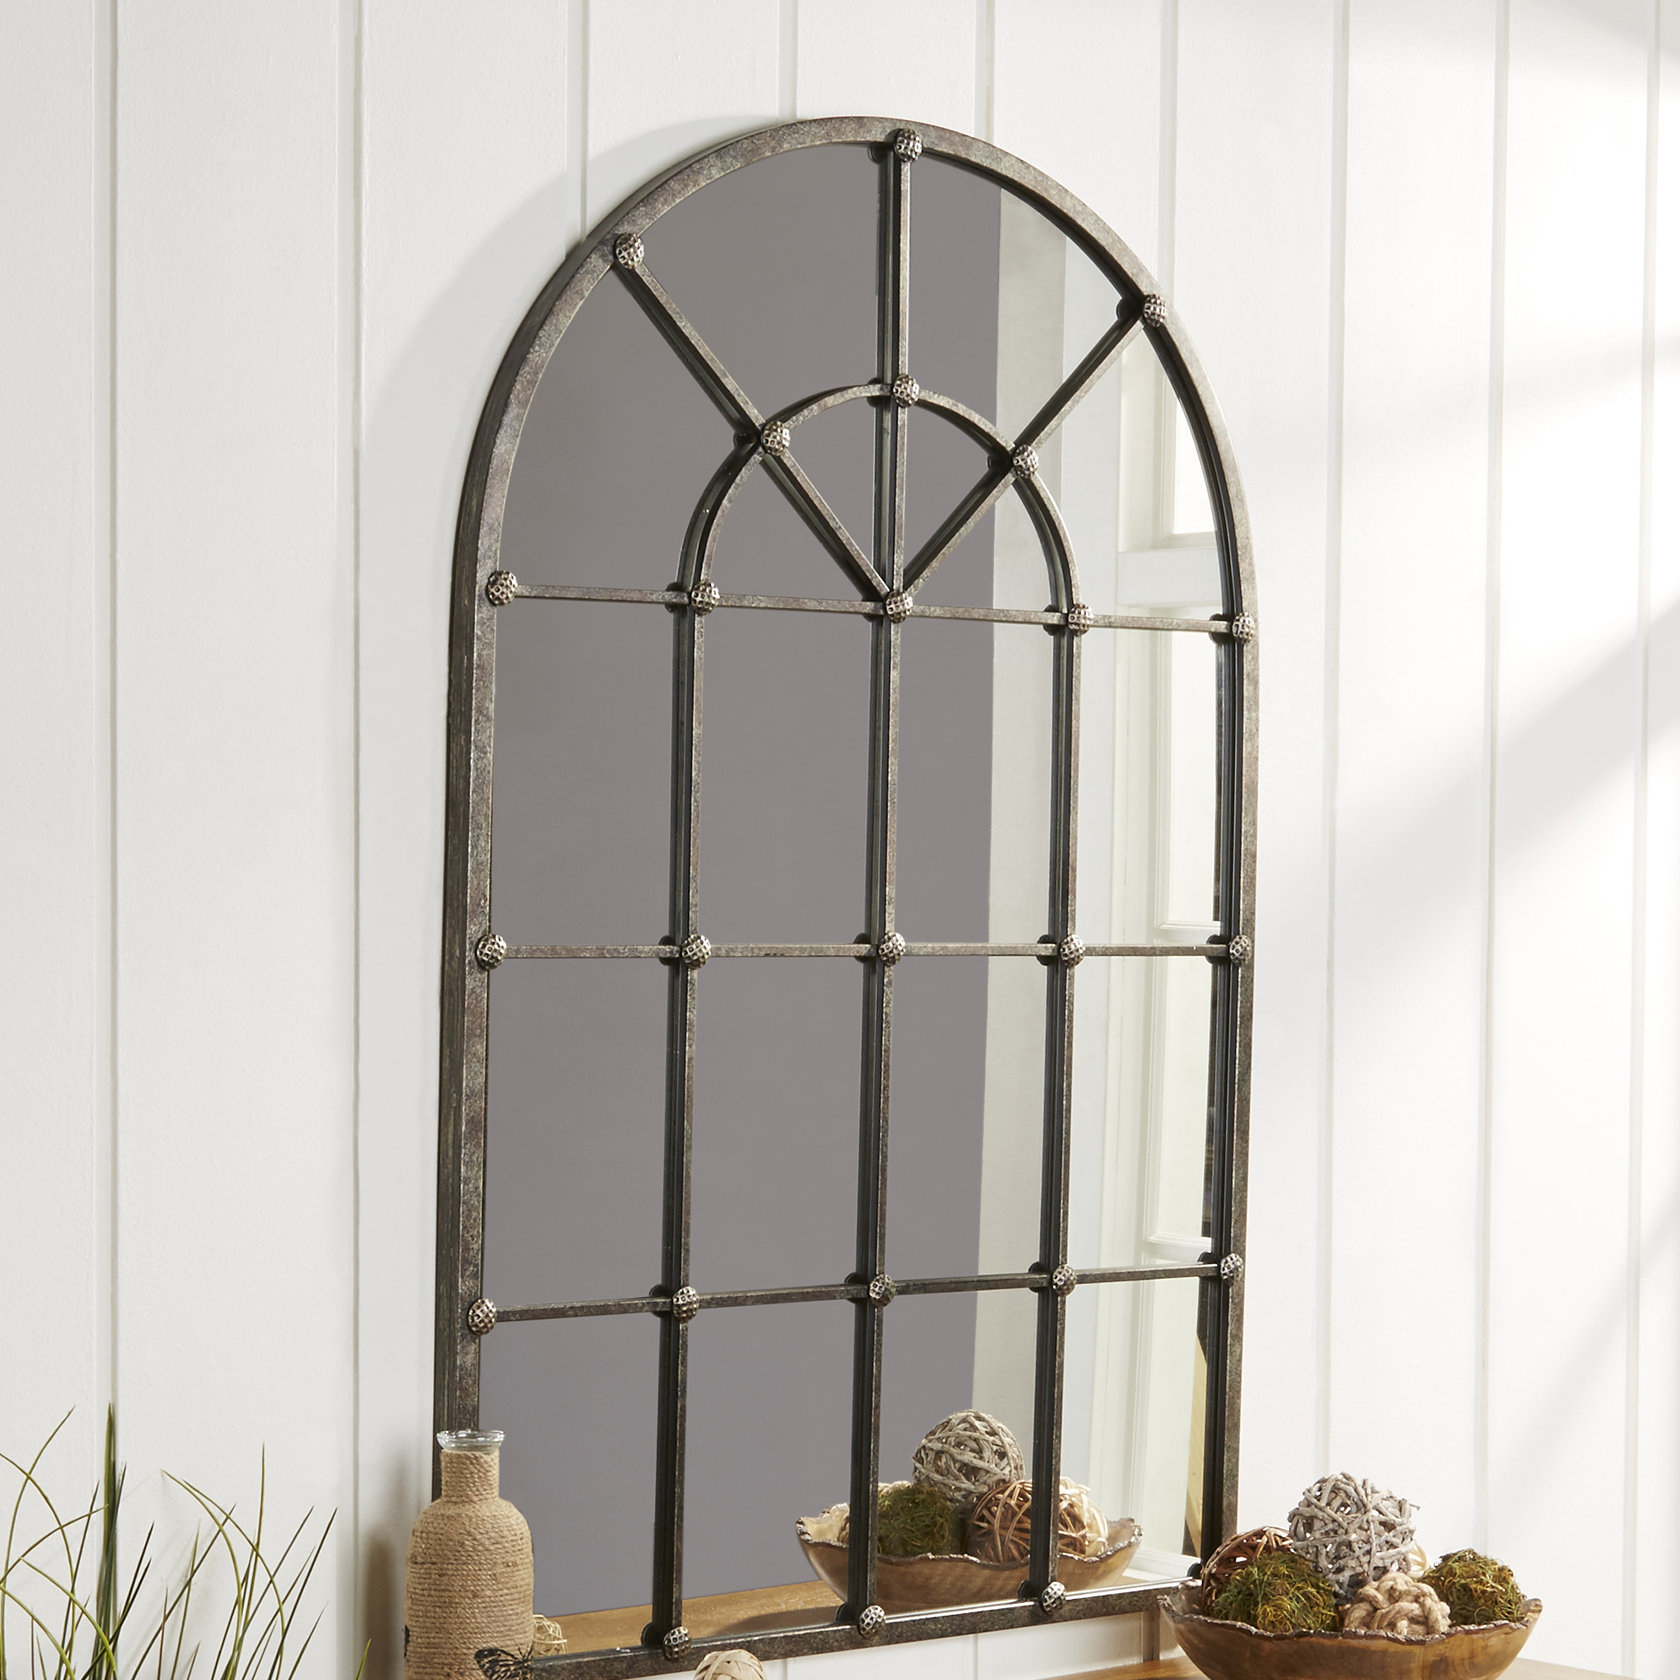 Romain Accent Mirror & Reviews | Joss & Main For 2 Piece Kissena Window Pane Accent Mirror Sets (View 17 of 20)